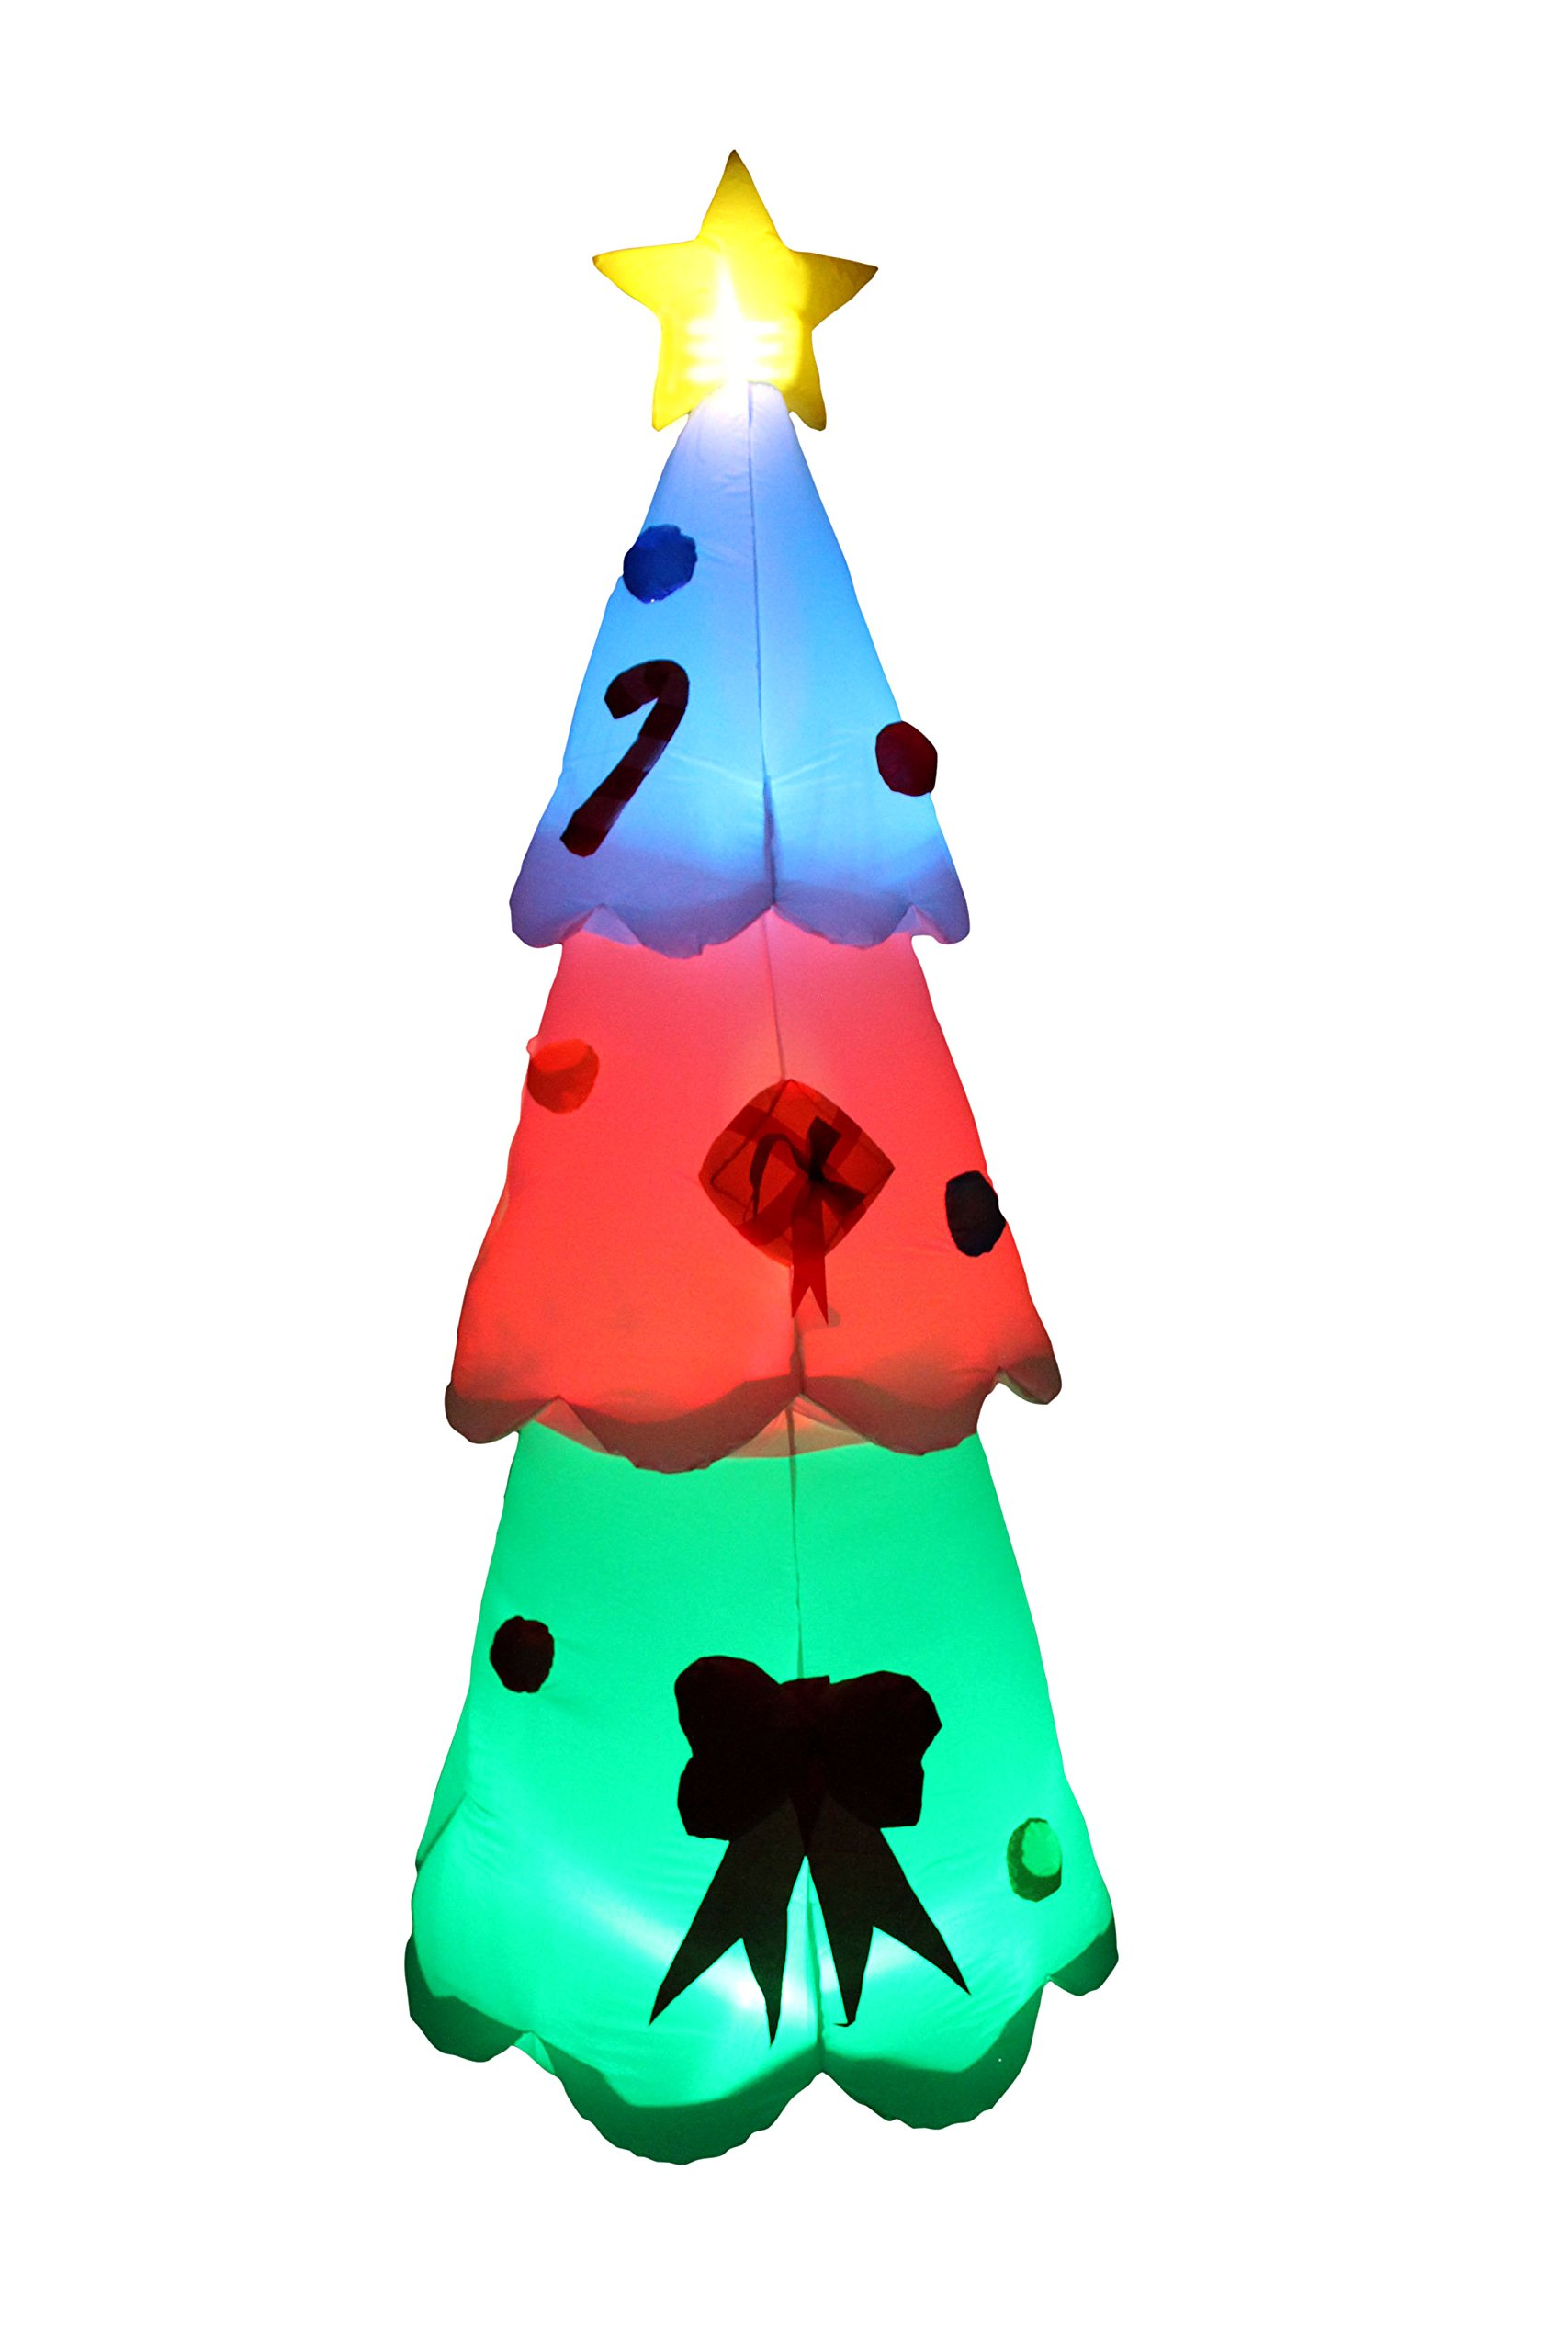 BZB Goods 8 Foot Tall Christmas Inflatable LED Color Changing Christmas Tree Lights Lighted Blowup Party Decoration for Outdoor Indoor Home Garden Family Prop Yard